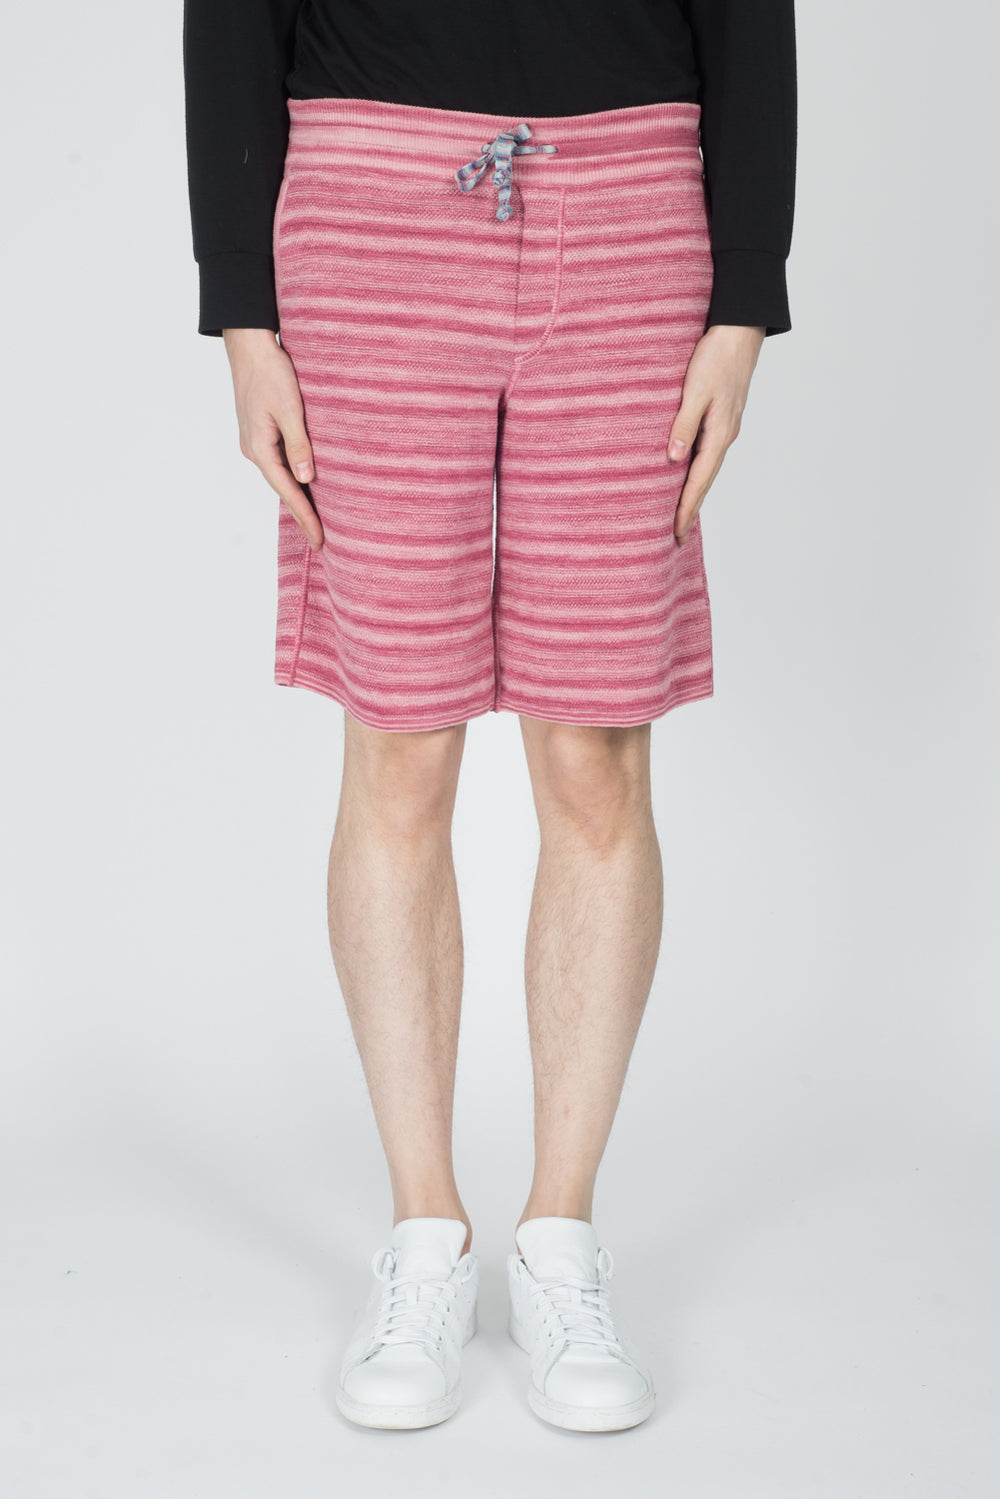 Missoni Knitted Stripe Bermuda Shorts In Pink